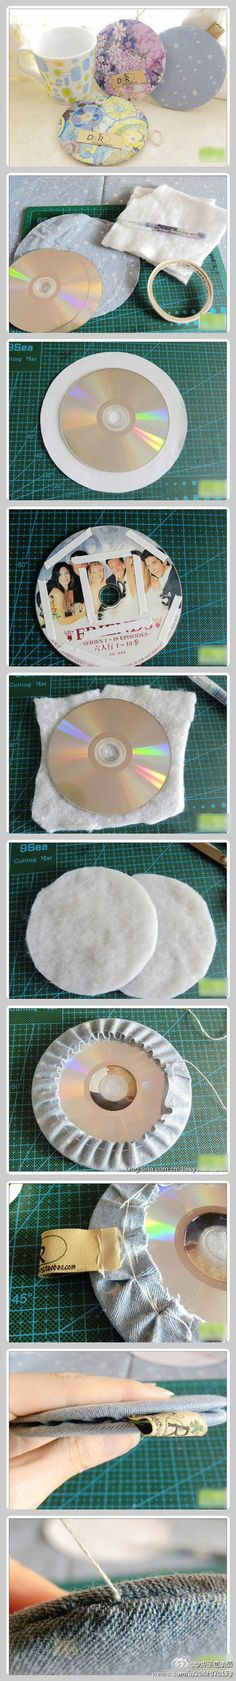 Recycle CD